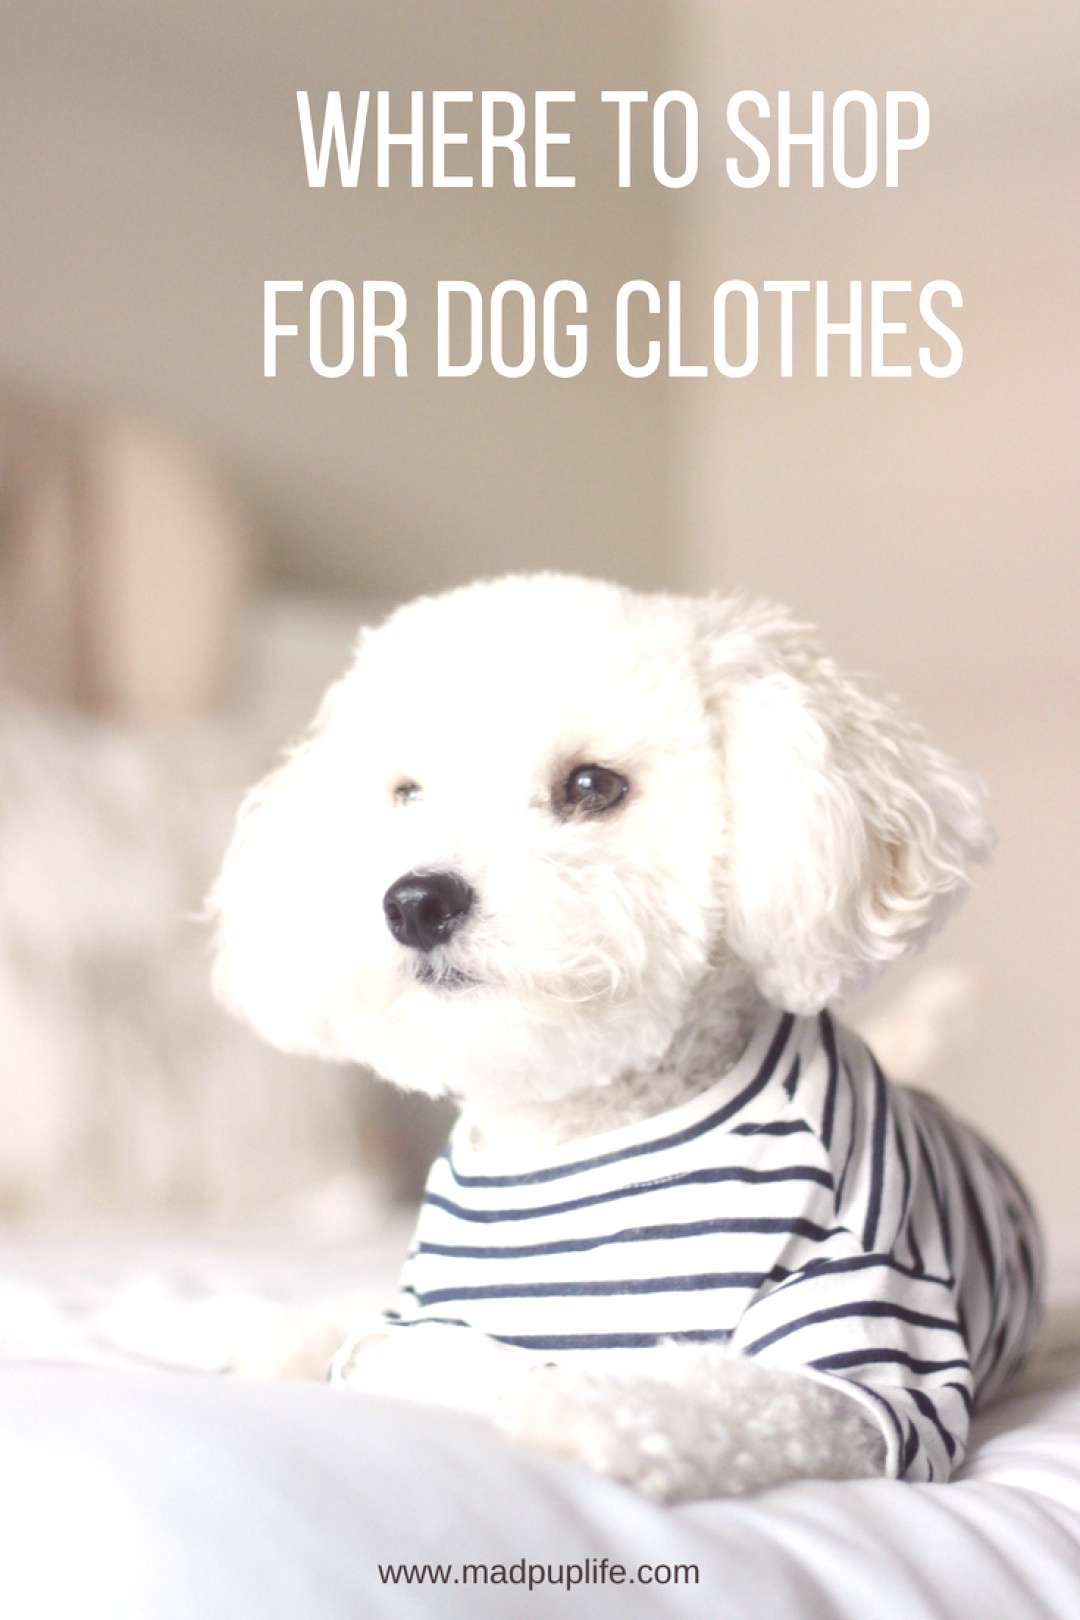 Searching for stylish and trendy dog clothing? Check out these Instagram famous dog shops!